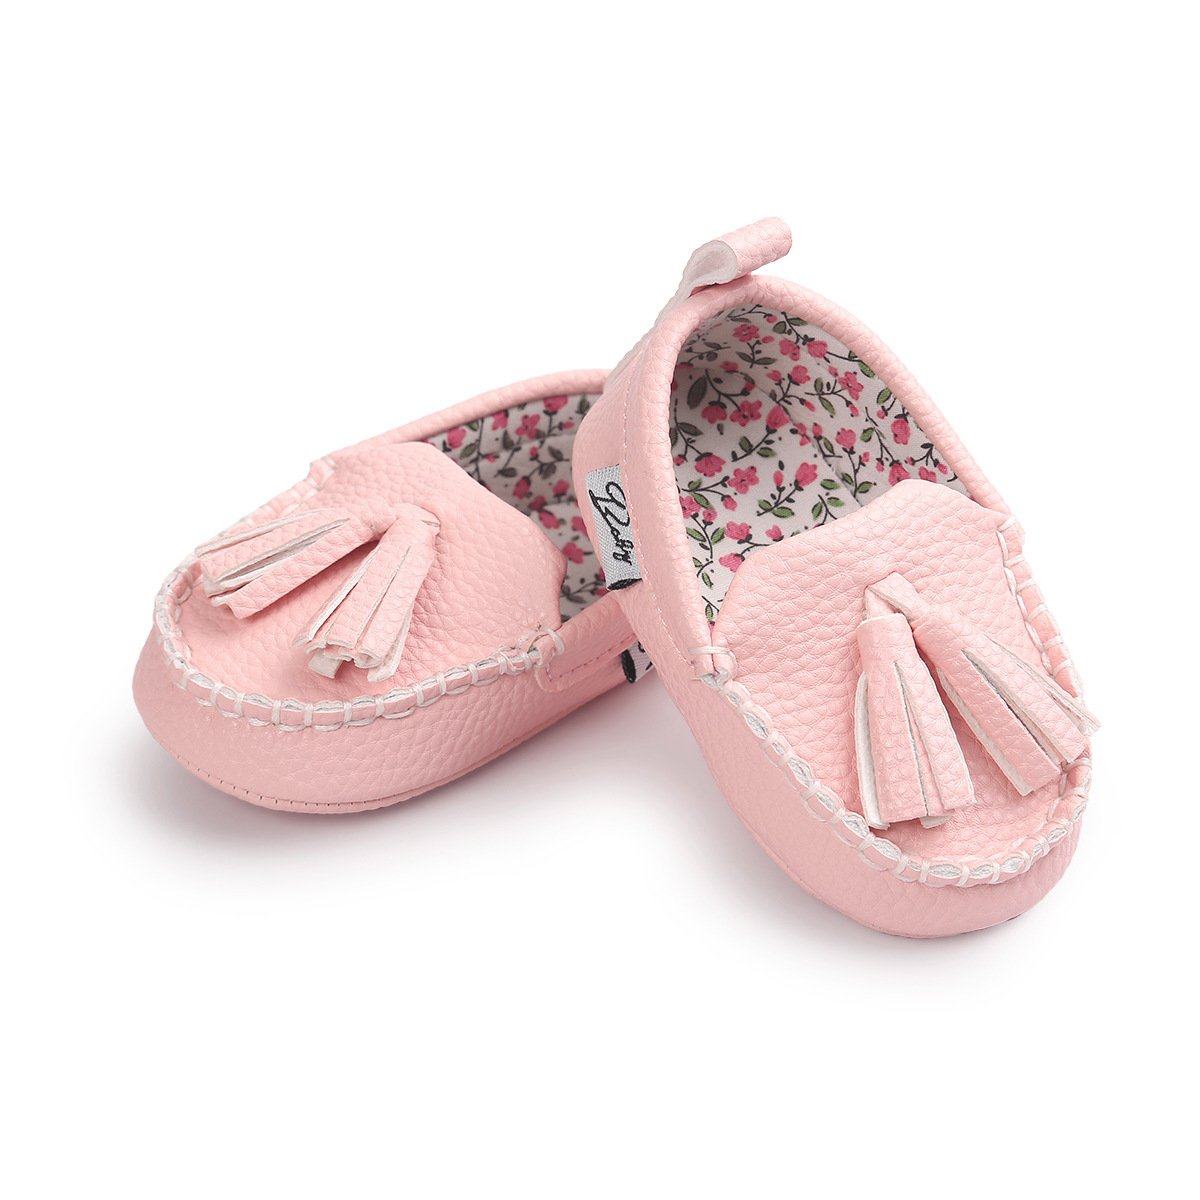 E-FAK Newborn Baby Boys Girls Moccasin Shoes Loafers Dress Flat Crib First Walker Shoes Slippers